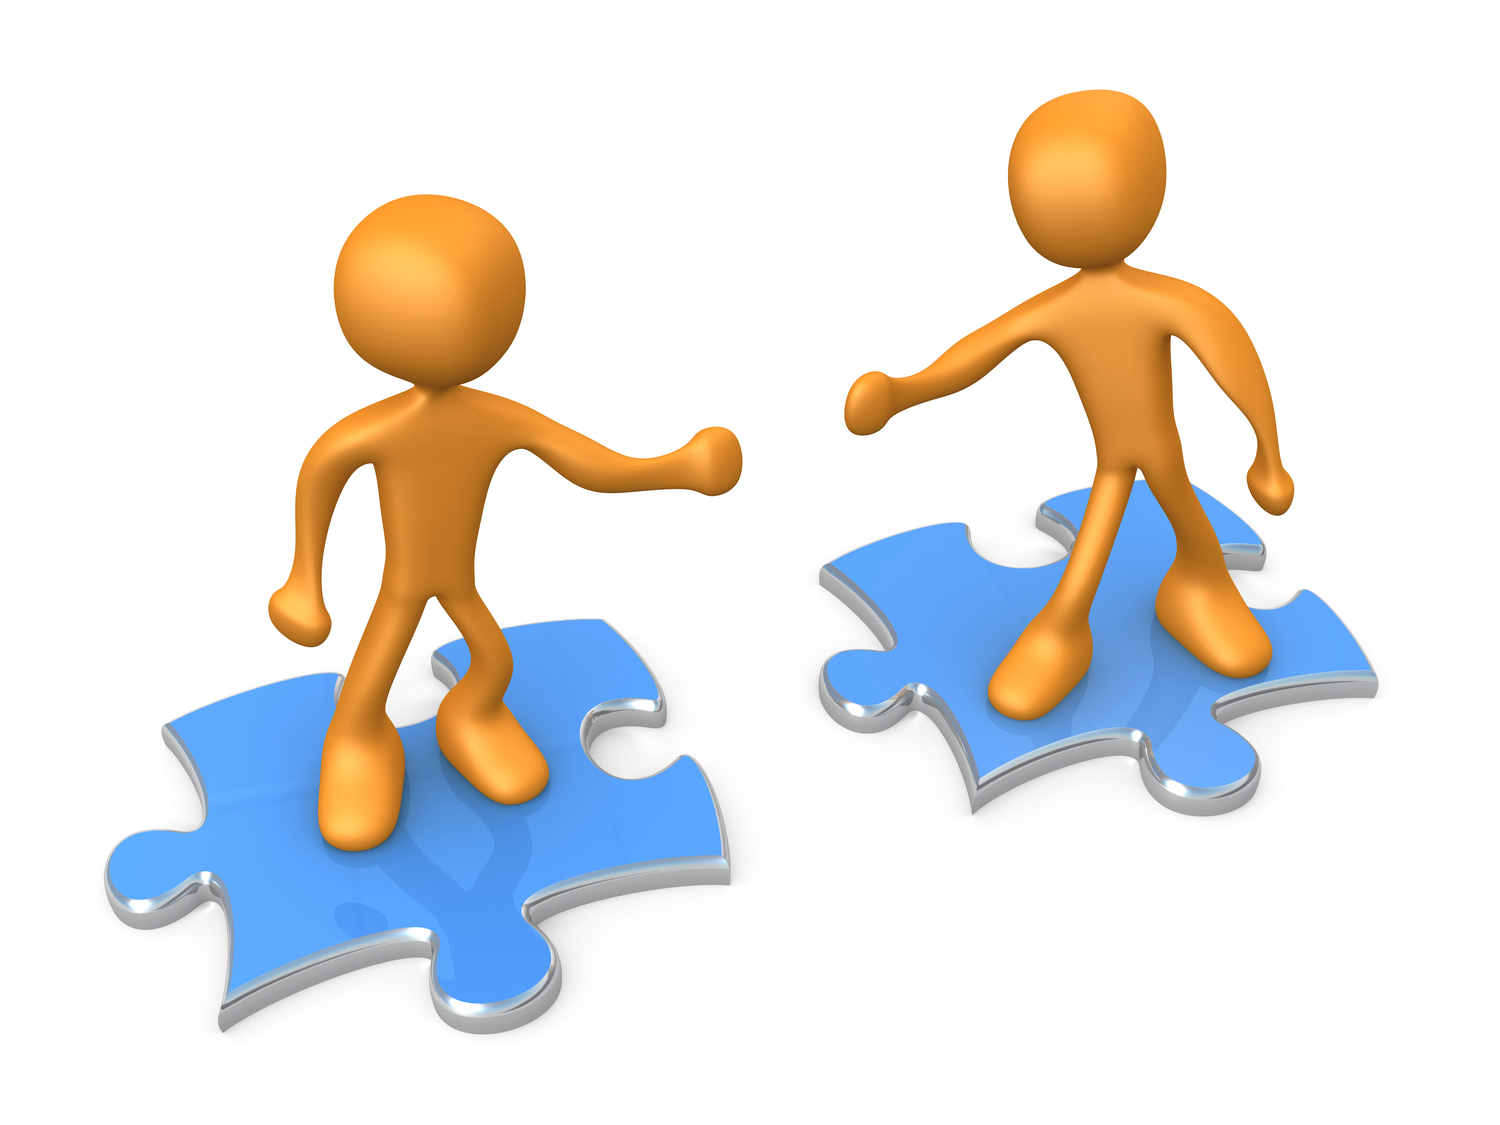 Free cliparts conflict strategies. Discussion clipart partner discussion